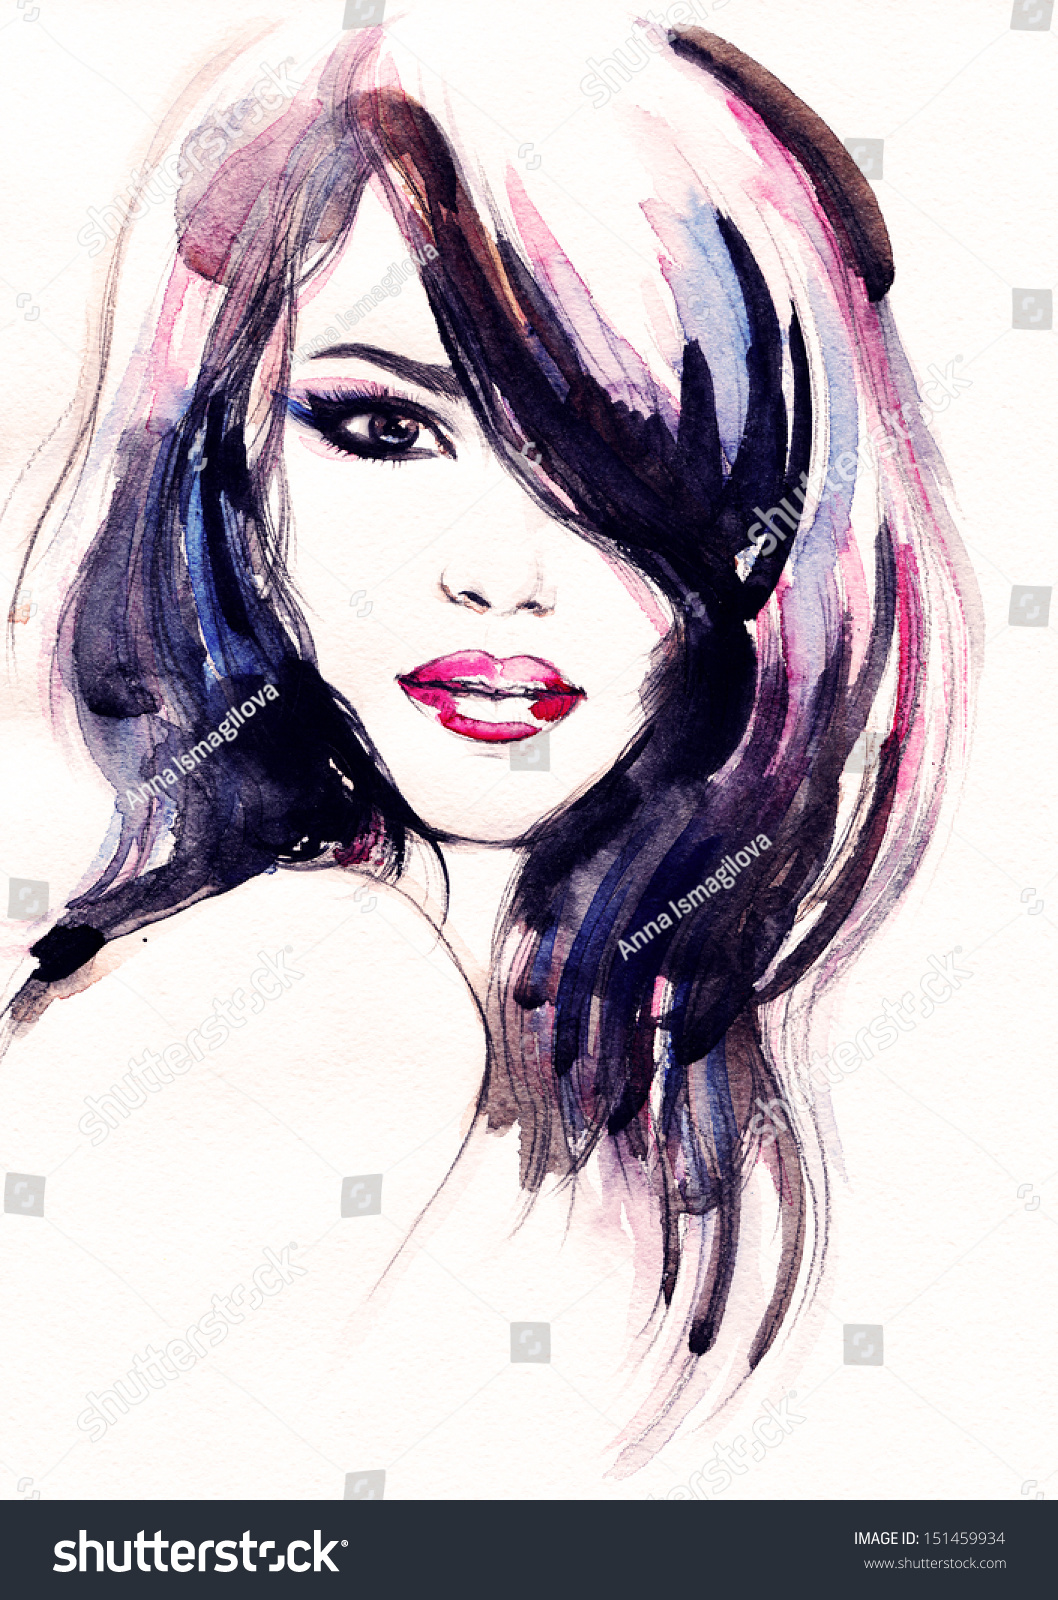 Beautiful Woman Face. Watercolor Illustration - 151459934 ...